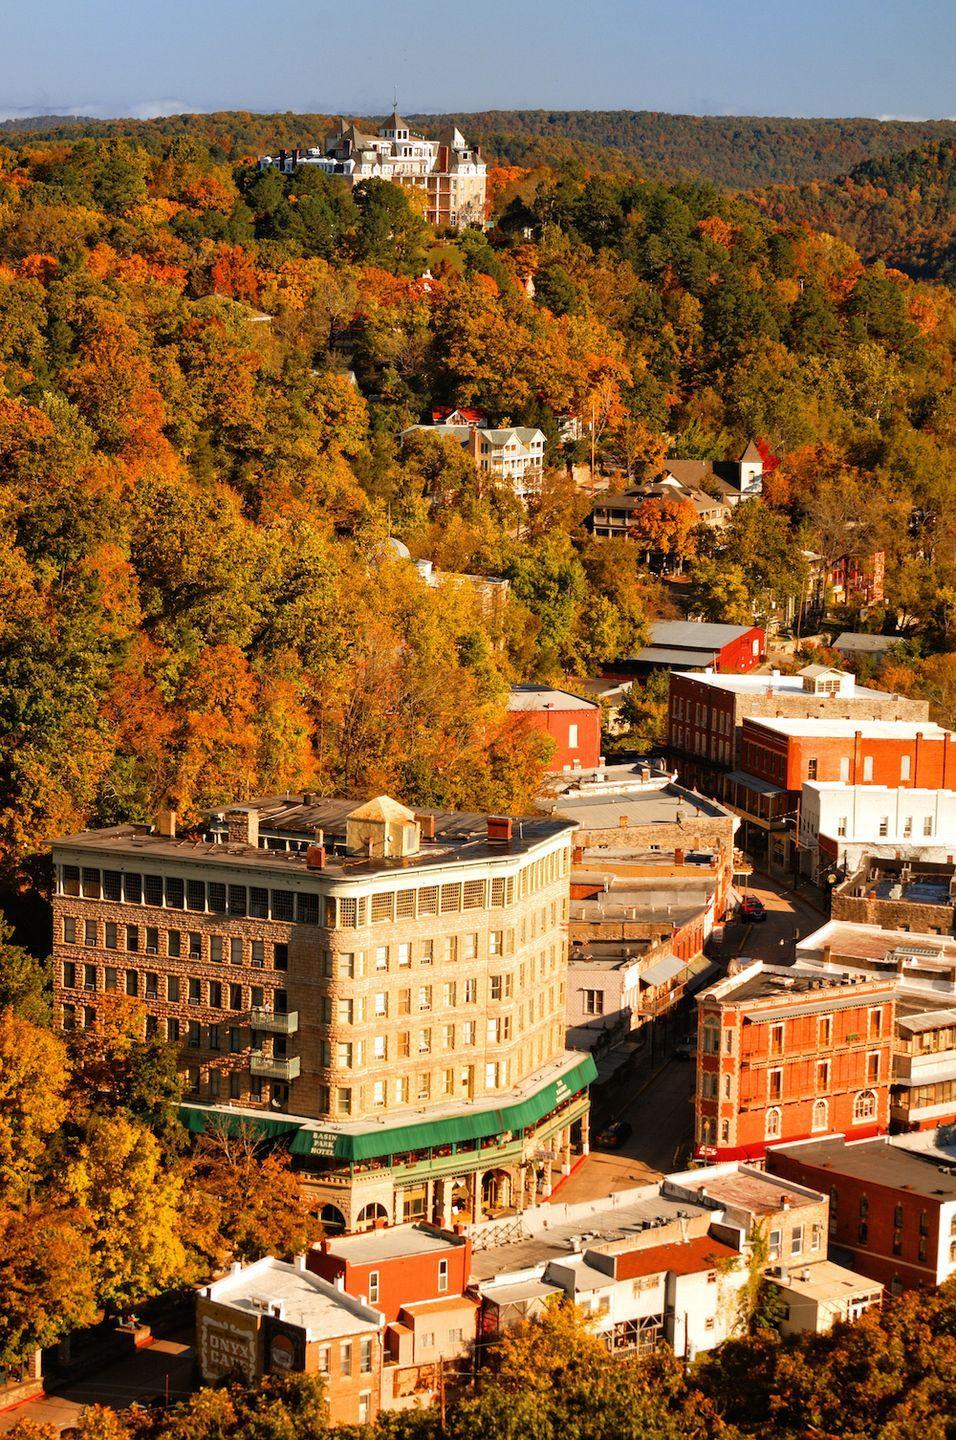 "<p>To live in <a href=""http://www.eurekaspringsonline.com/"" rel=""nofollow noopener"" target=""_blank"" data-ylk=""slk:Eureka Springs"" class=""link rapid-noclick-resp"">Eureka Springs</a> is to be surrounded by natural beauty 24-7. Even the town's most famous place of worship, the <a href=""http://www.thorncrown.com/"" rel=""nofollow noopener"" target=""_blank"" data-ylk=""slk:Thorncrown Chapel"" class=""link rapid-noclick-resp"">Thorncrown Chapel</a>, ensures that you can still take in the gorgeous Ozark mountains scenery via 6,000-square-feet of windows. </p><p><a href=""https://www.housebeautiful.com/room-decorating/g1494/rooms-with-great-views/"" rel=""nofollow noopener"" target=""_blank"" data-ylk=""slk:18 rooms with breathtaking views »"" class=""link rapid-noclick-resp""><em>18 rooms with breathtaking views »</em></a></p>"